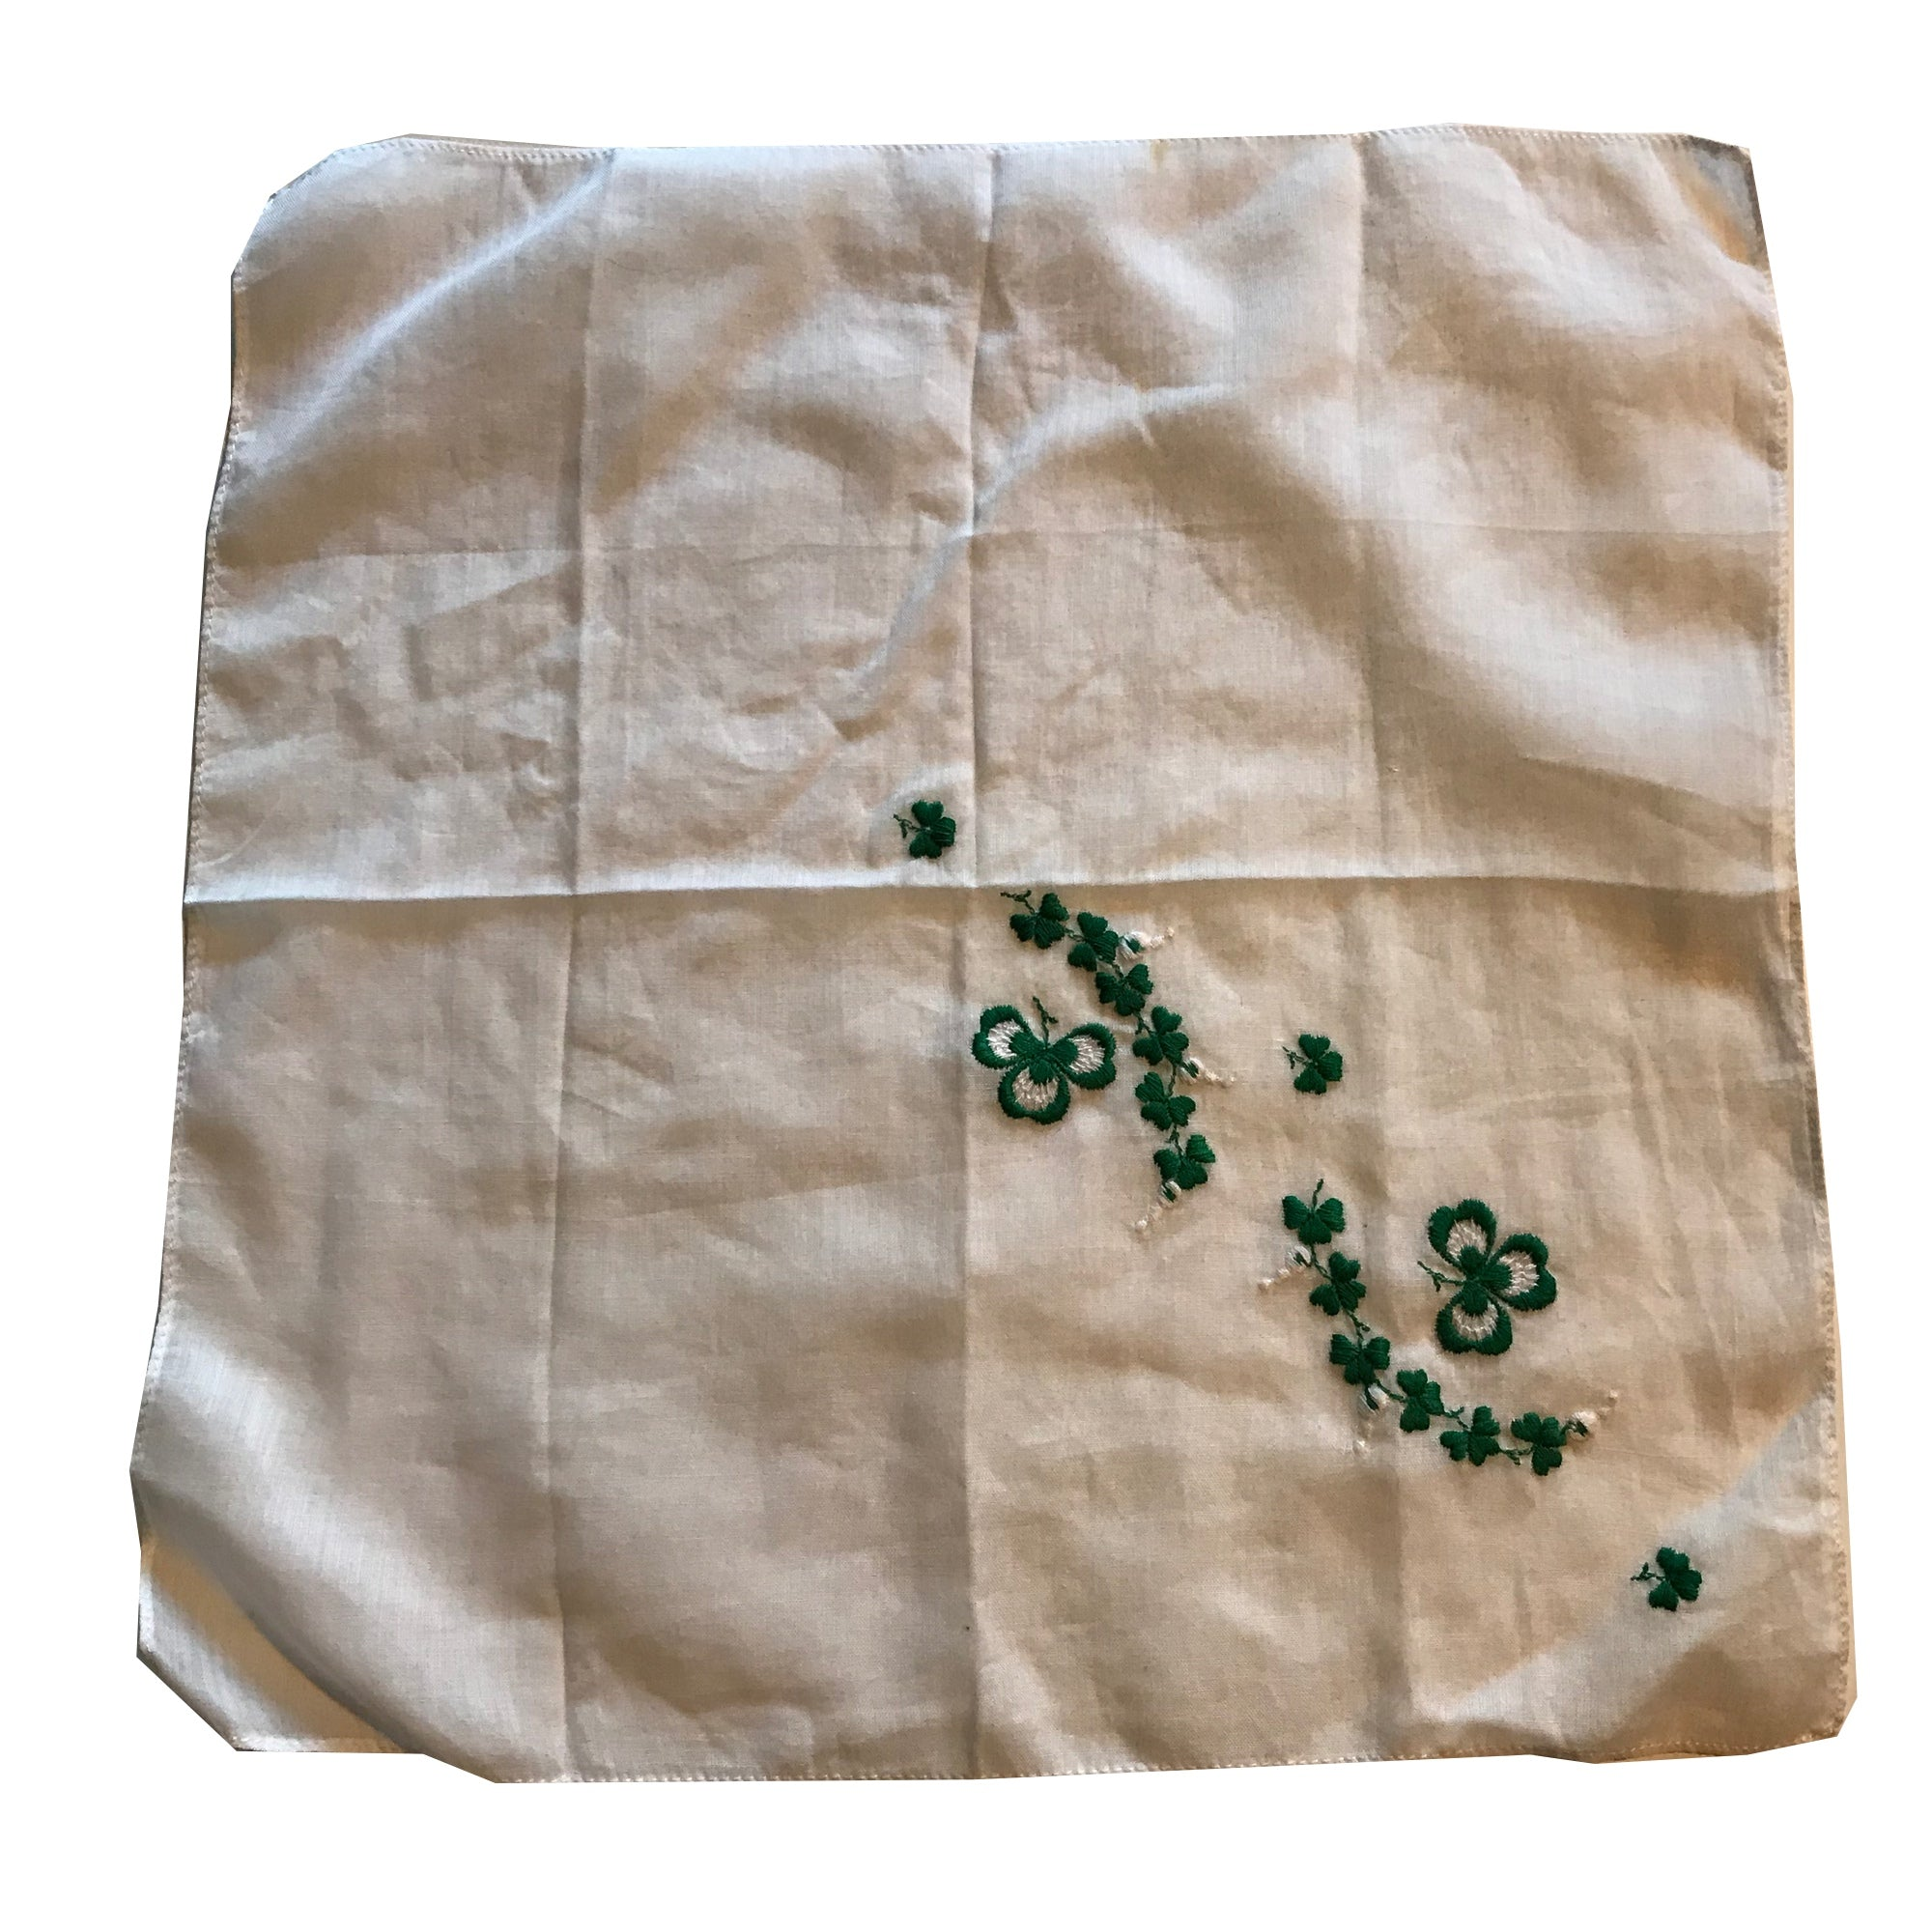 Embroidered Lucky Clover Green and White Handkerchief circa 1950s